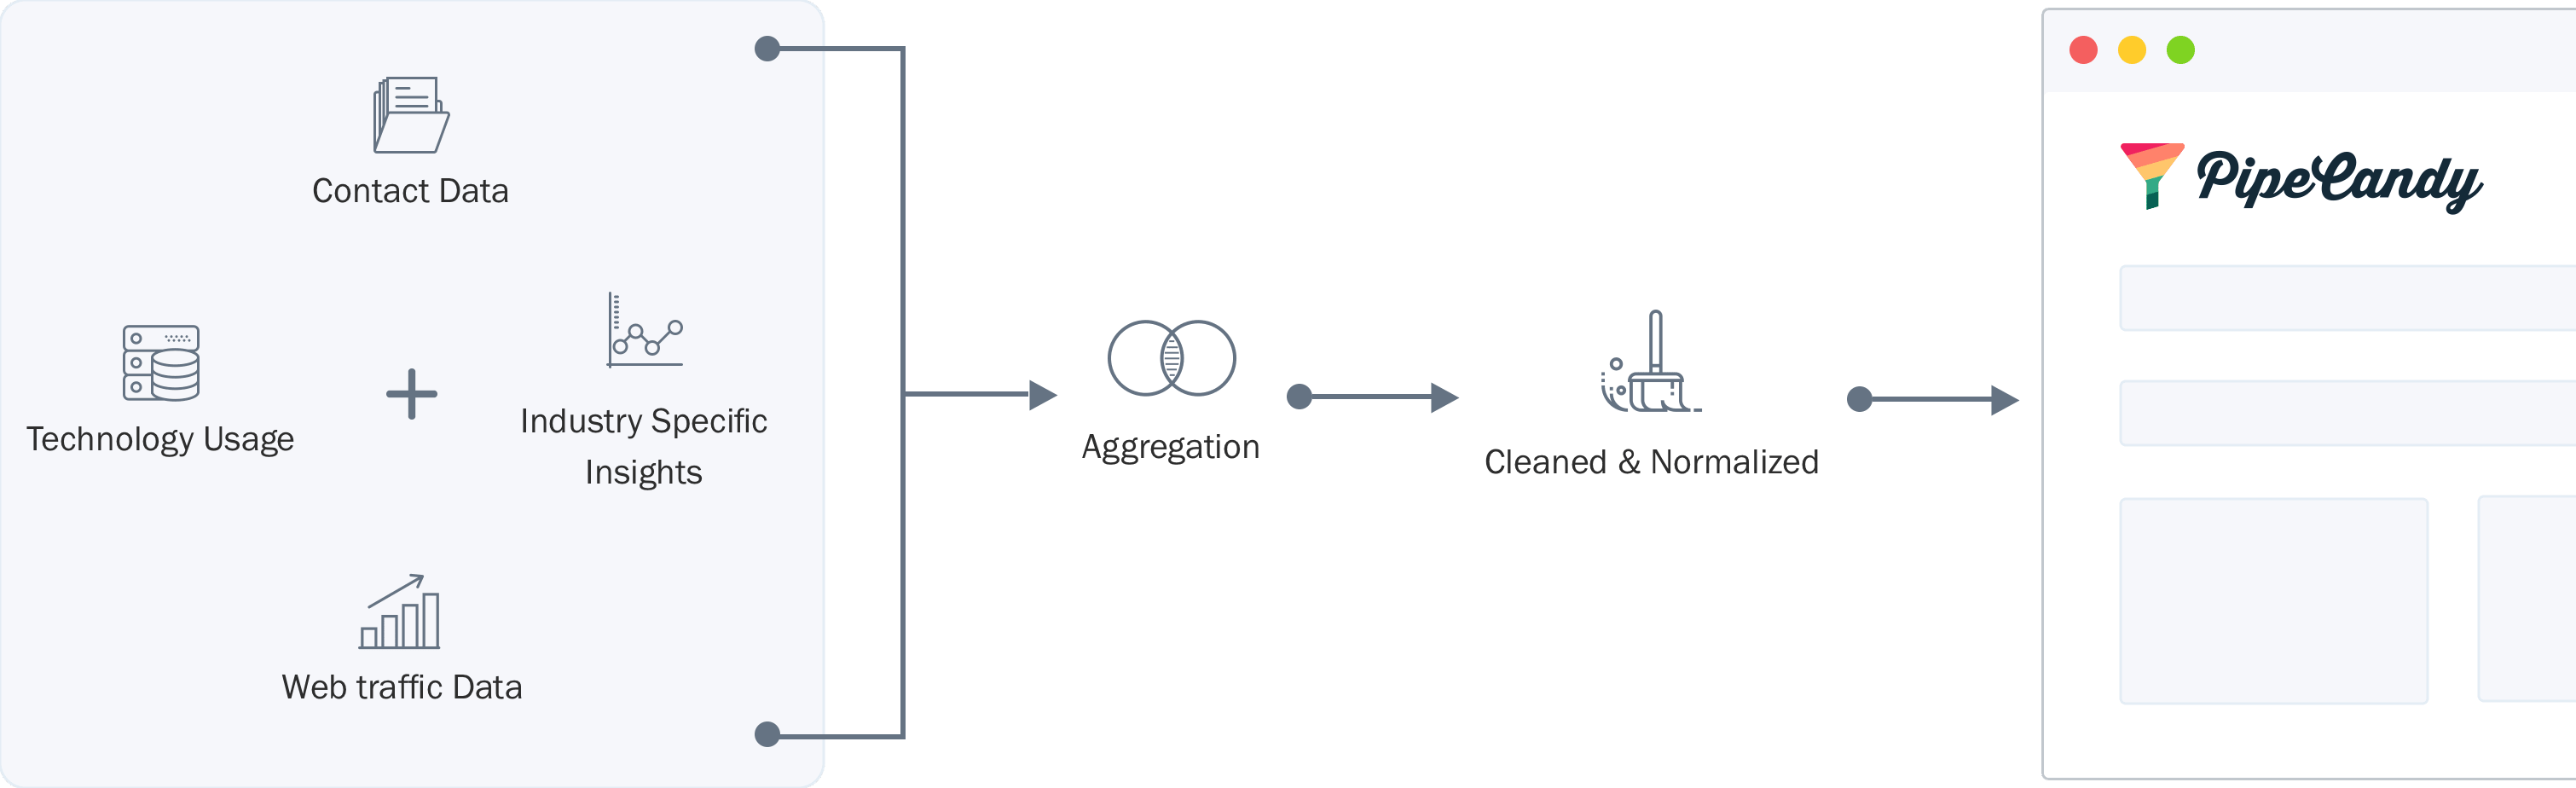 How PipeCandy works workflow image